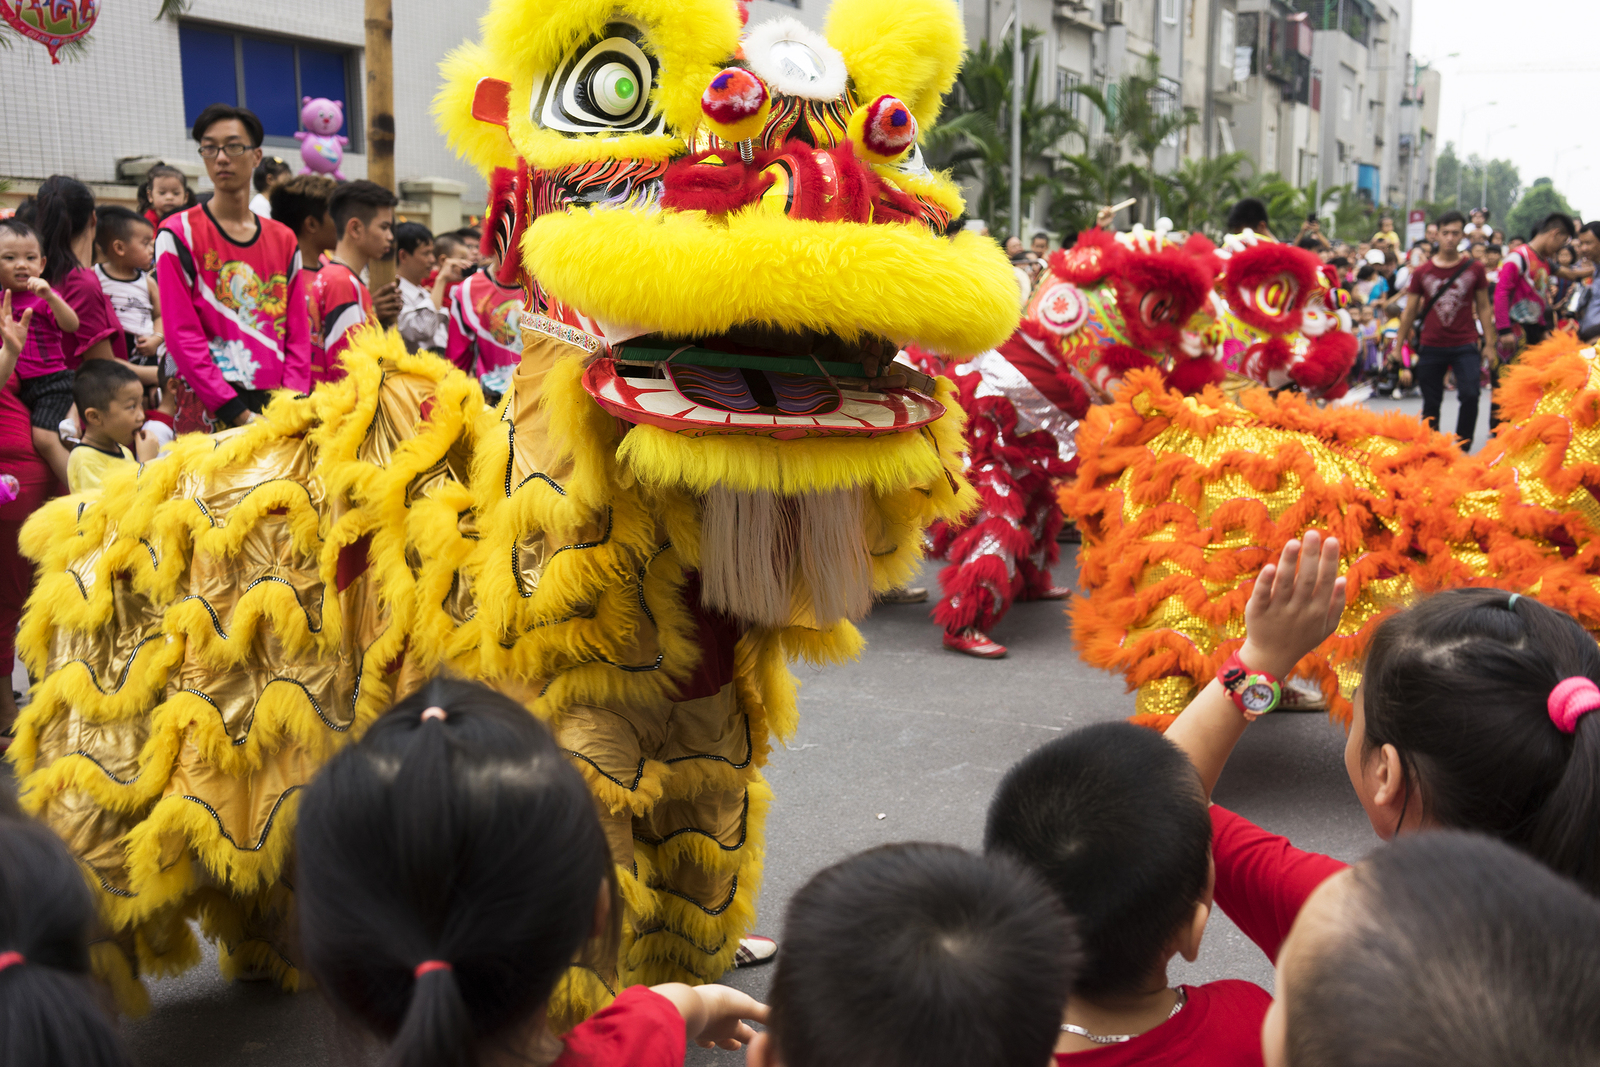 mid-autumn Vietnam, Mid-autumn festival, mooncakes, saigon happenings, grapevyne, where to go for mid autumn festival in Saigon, vietnamese celebrations, lion dances in Ho Chi Minh, dragon boat racing in Ho Chi Minh, HCMC festivities, public holidays